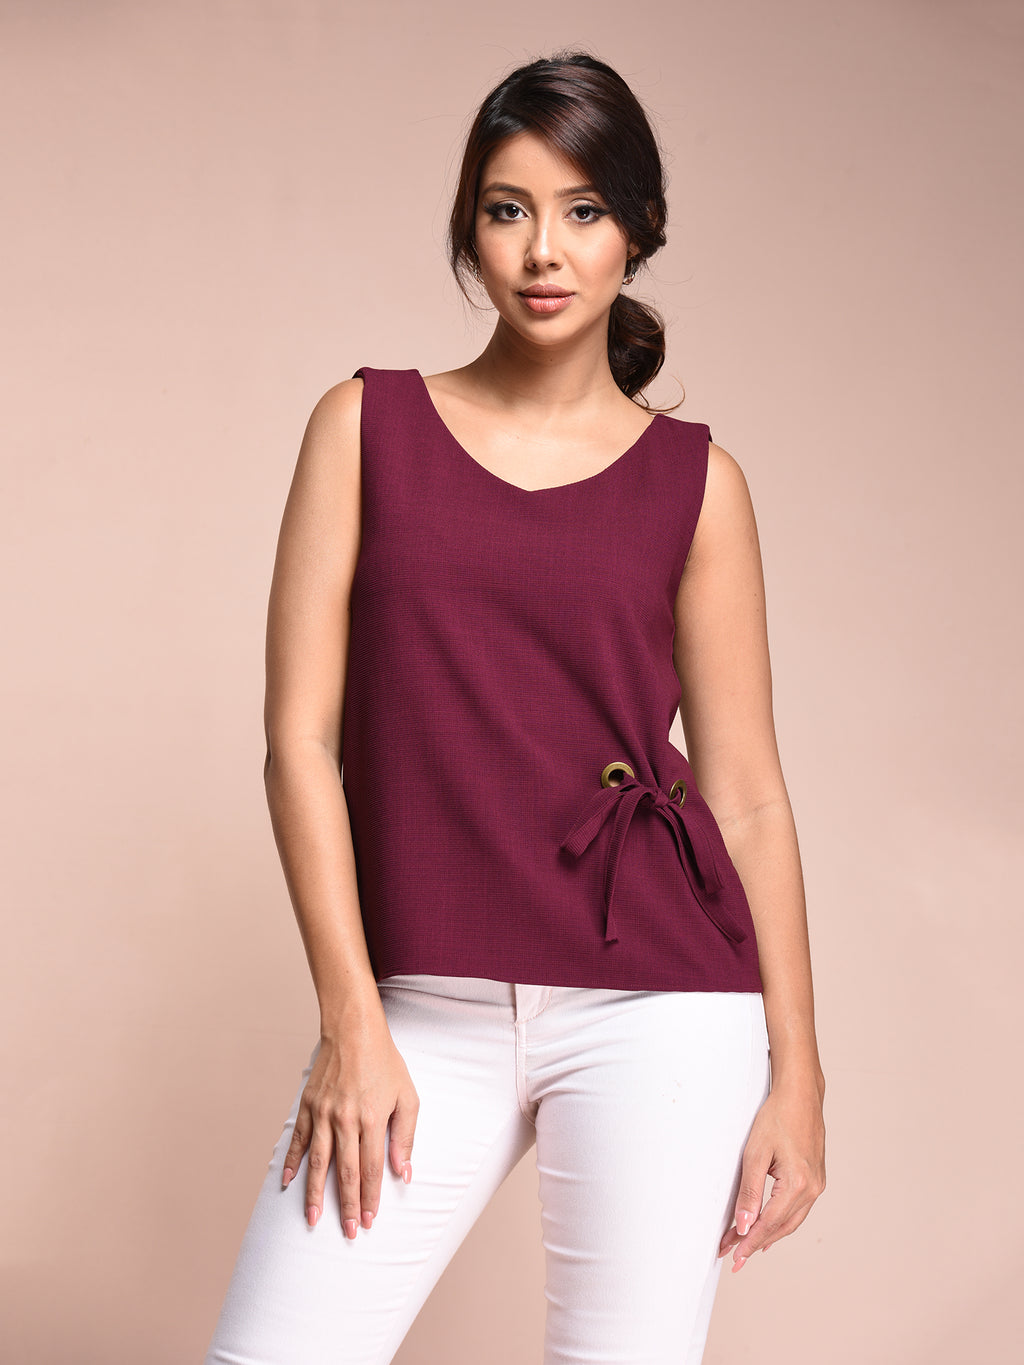 'V' NECK BASIC SLEEVLES TOP